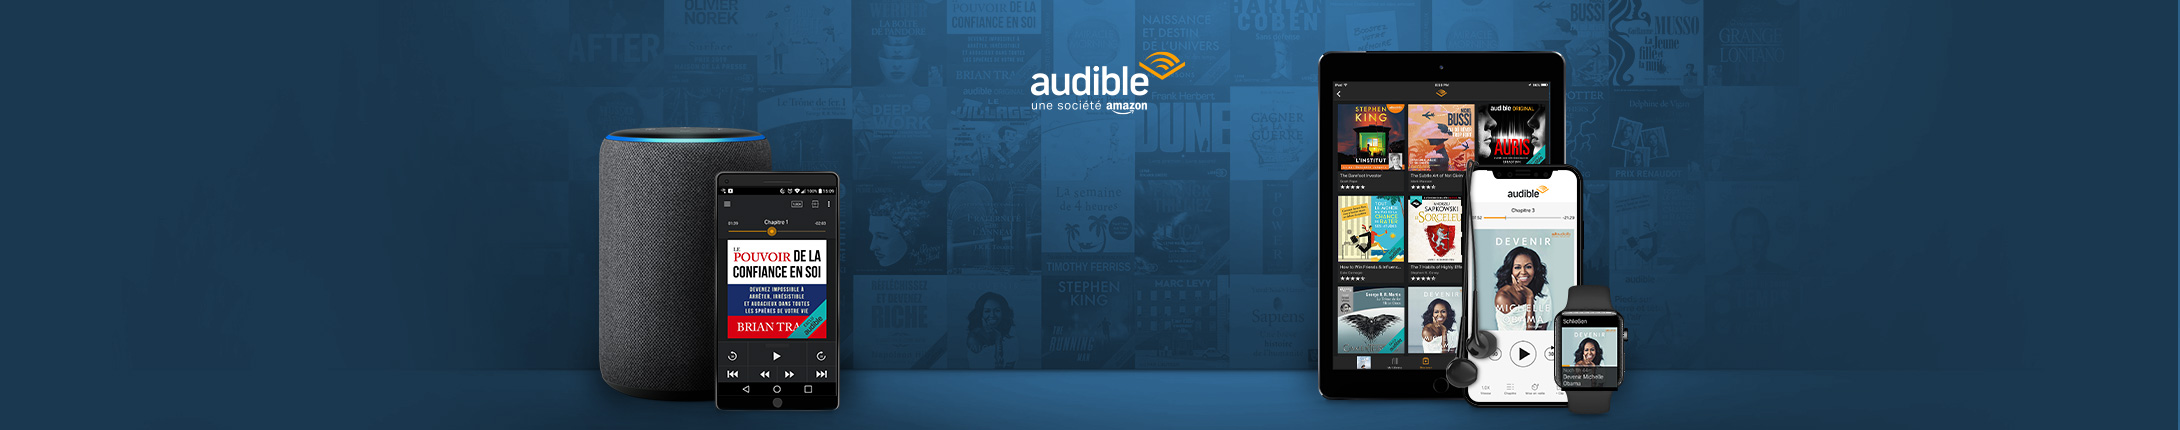 Télécharger l'application Audible